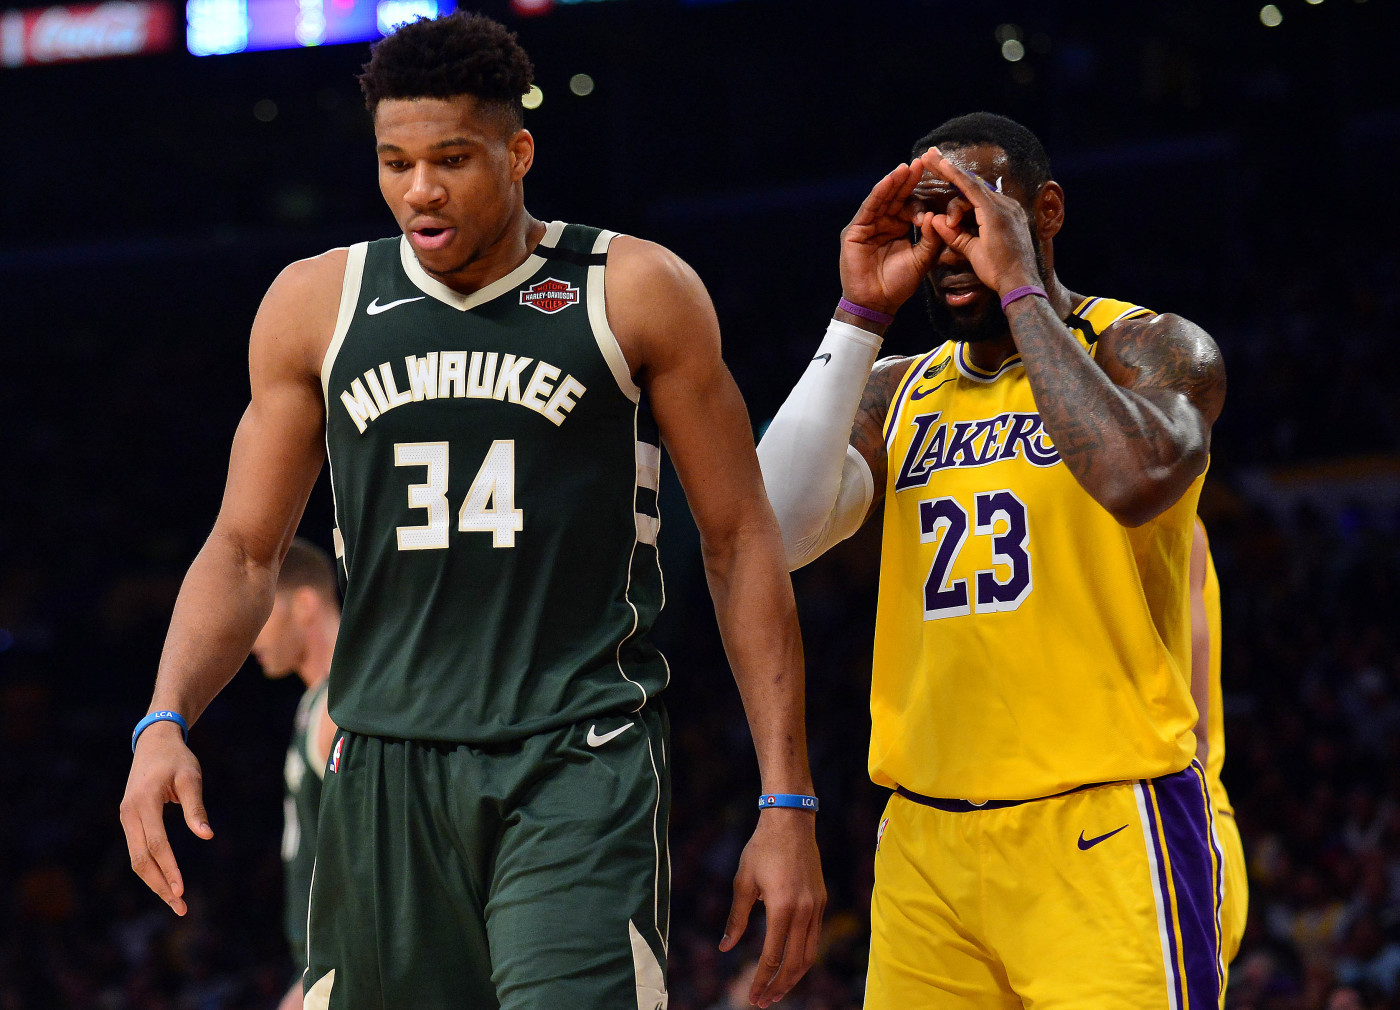 Giannis Antetokounmpo LeBron James Bucks Lakers LA 2020